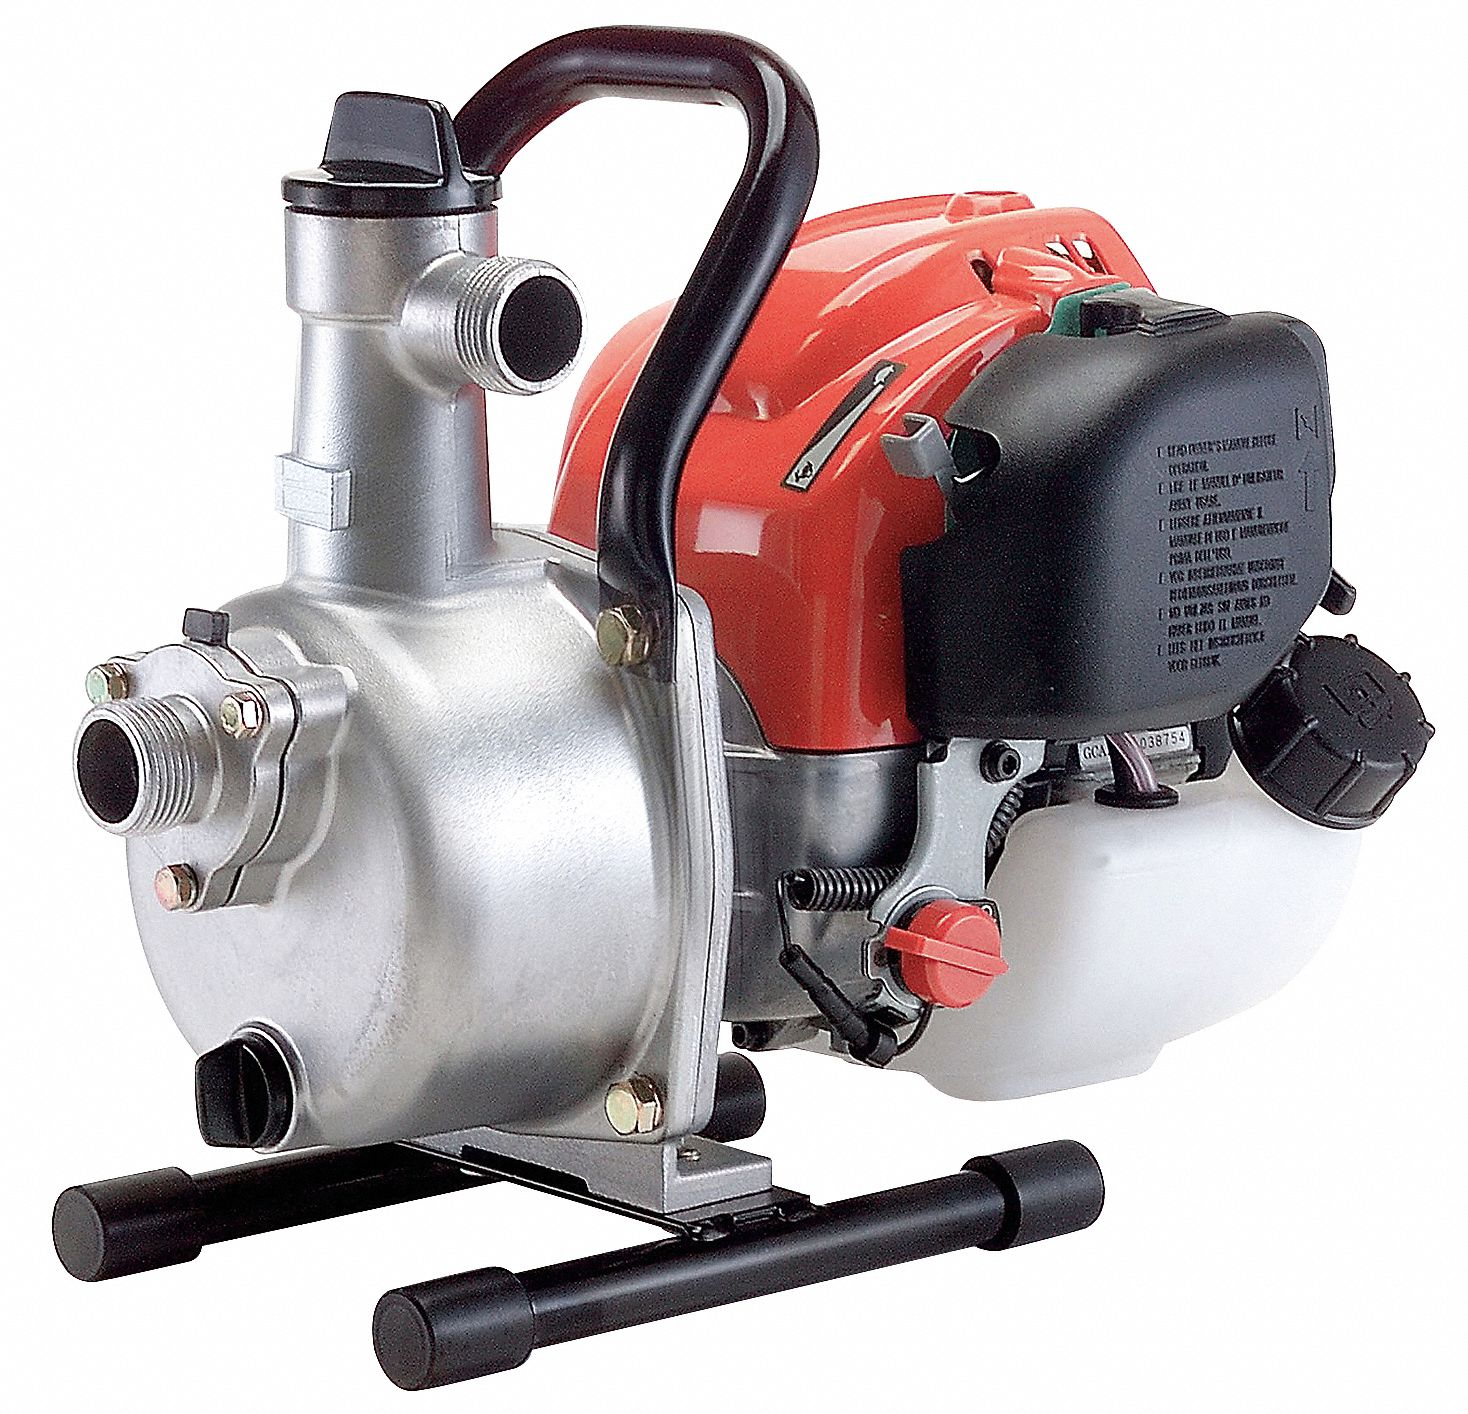 Portable Engine Driven Pumps